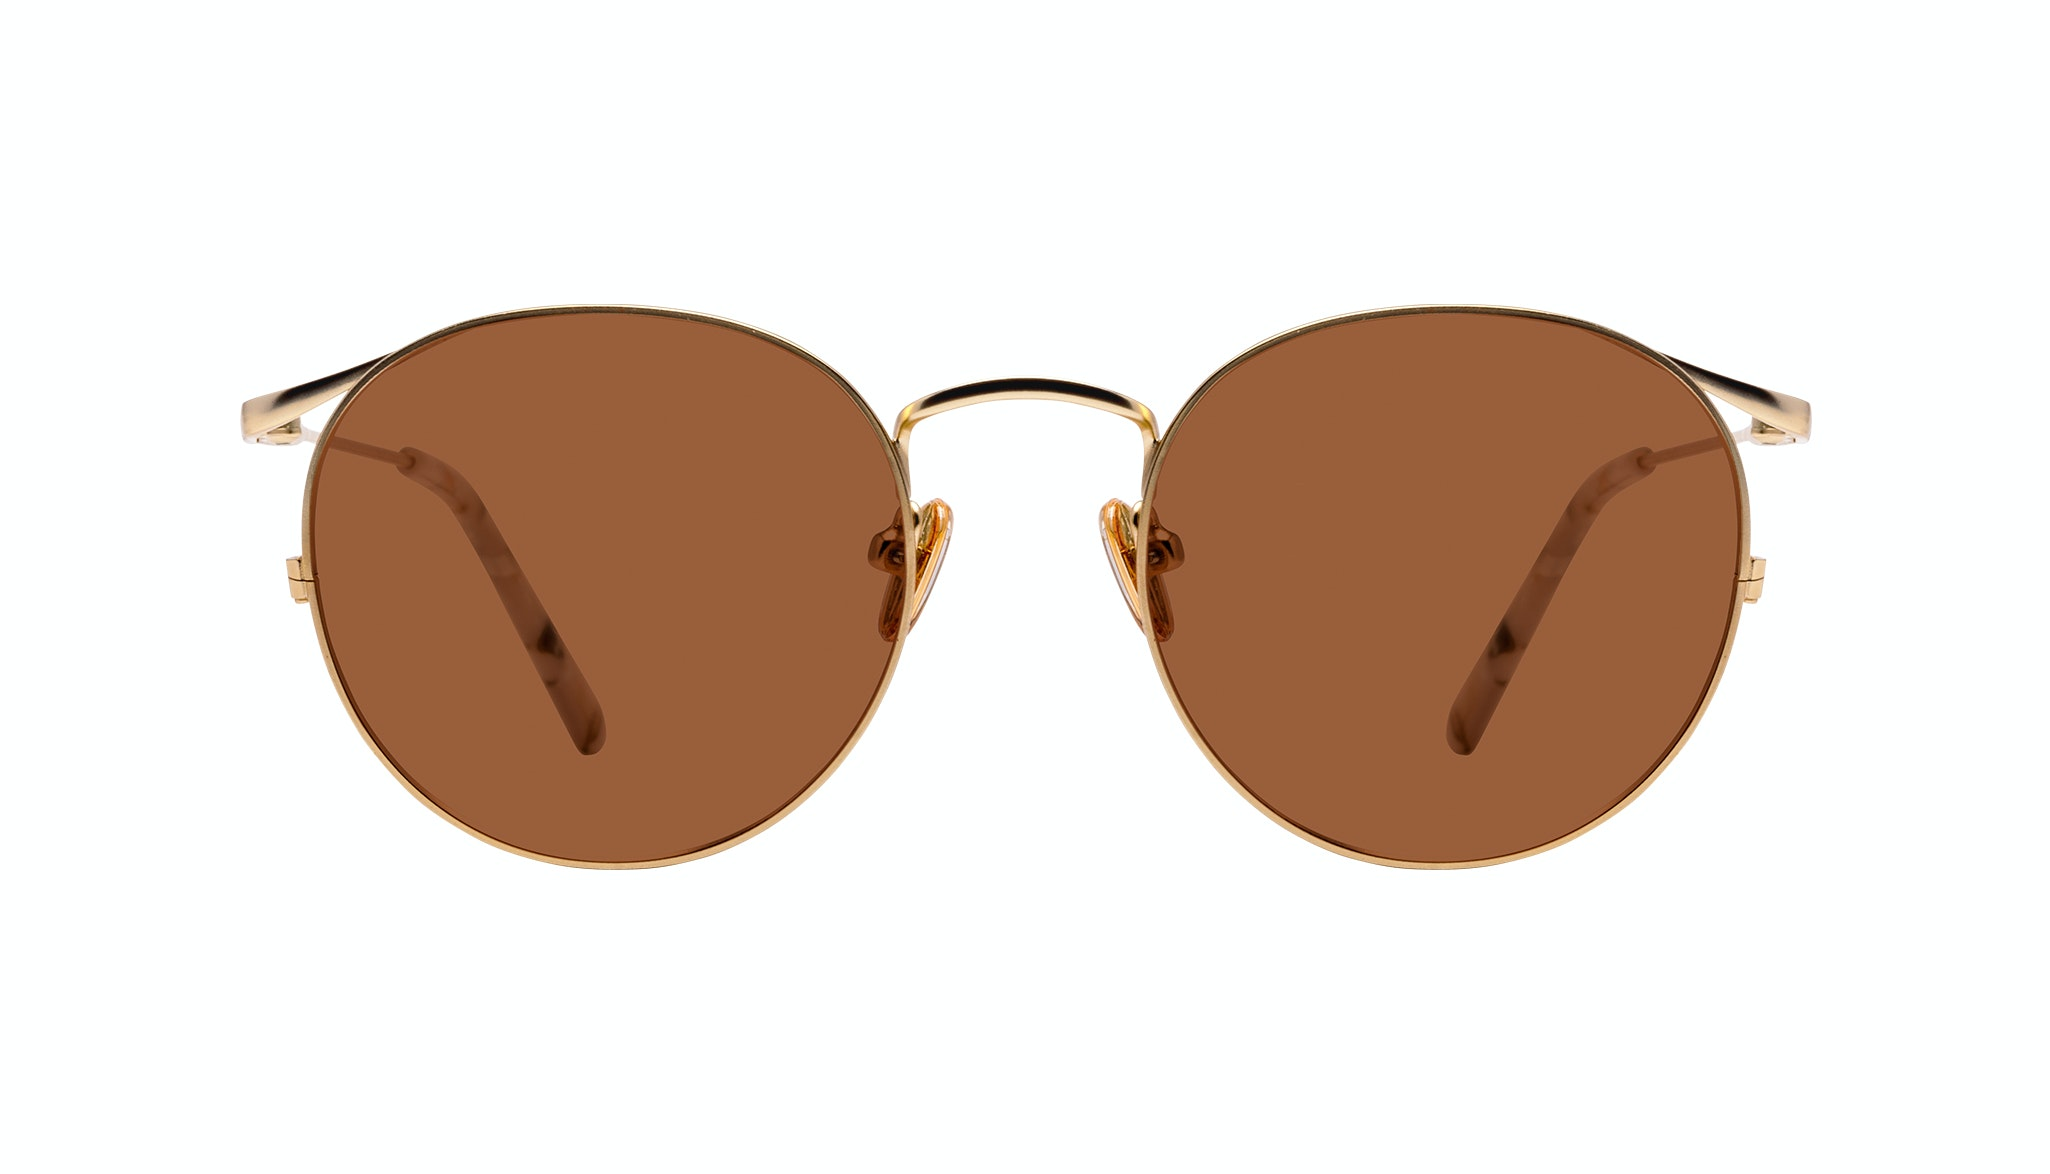 Affordable Fashion Glasses Round Sunglasses Women Curve Gold